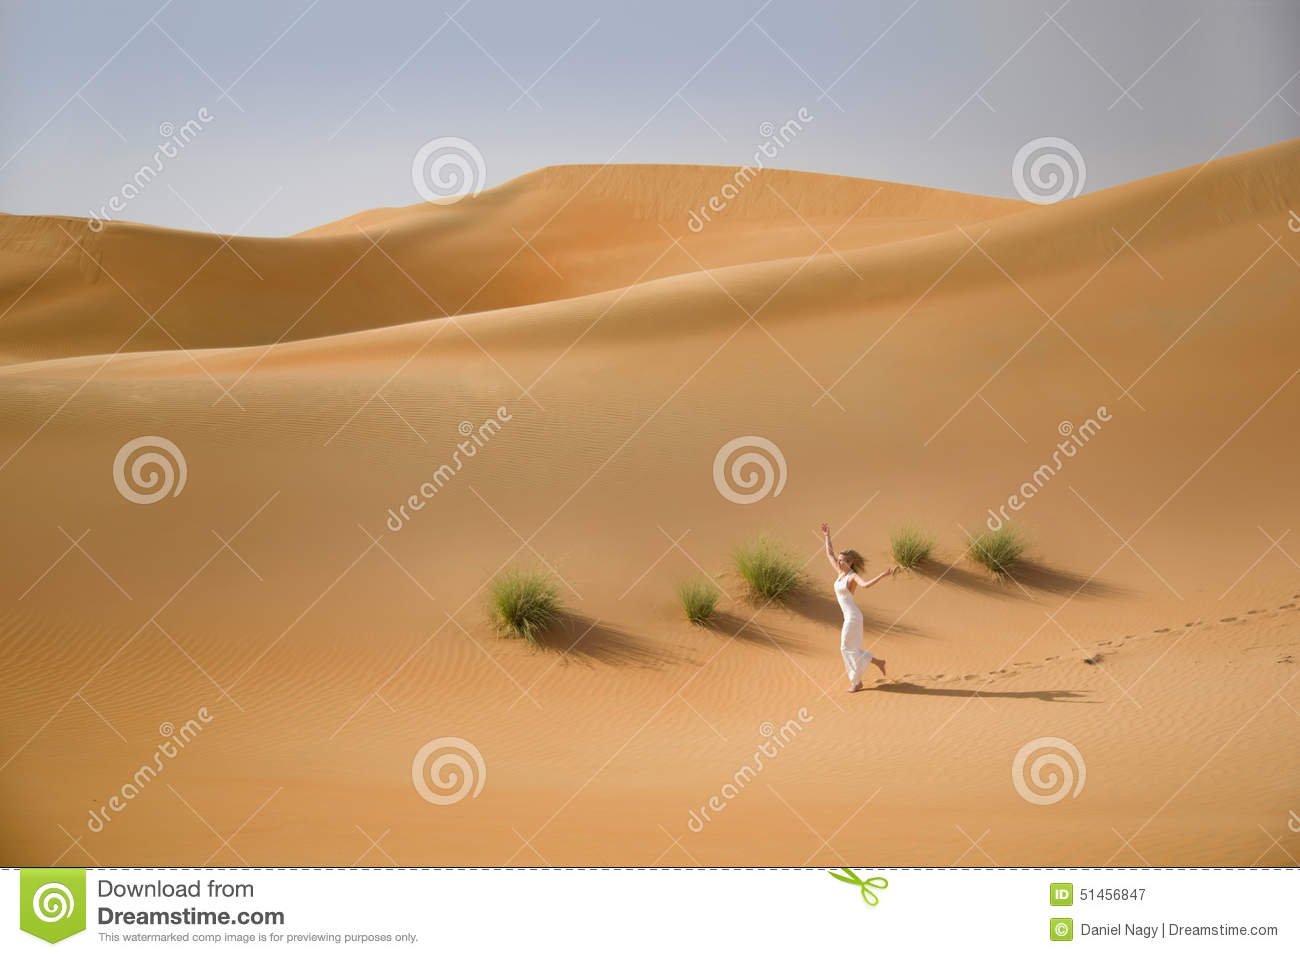 Beautiful Sand Dunes, Grass And A Slim Running Woman In White.